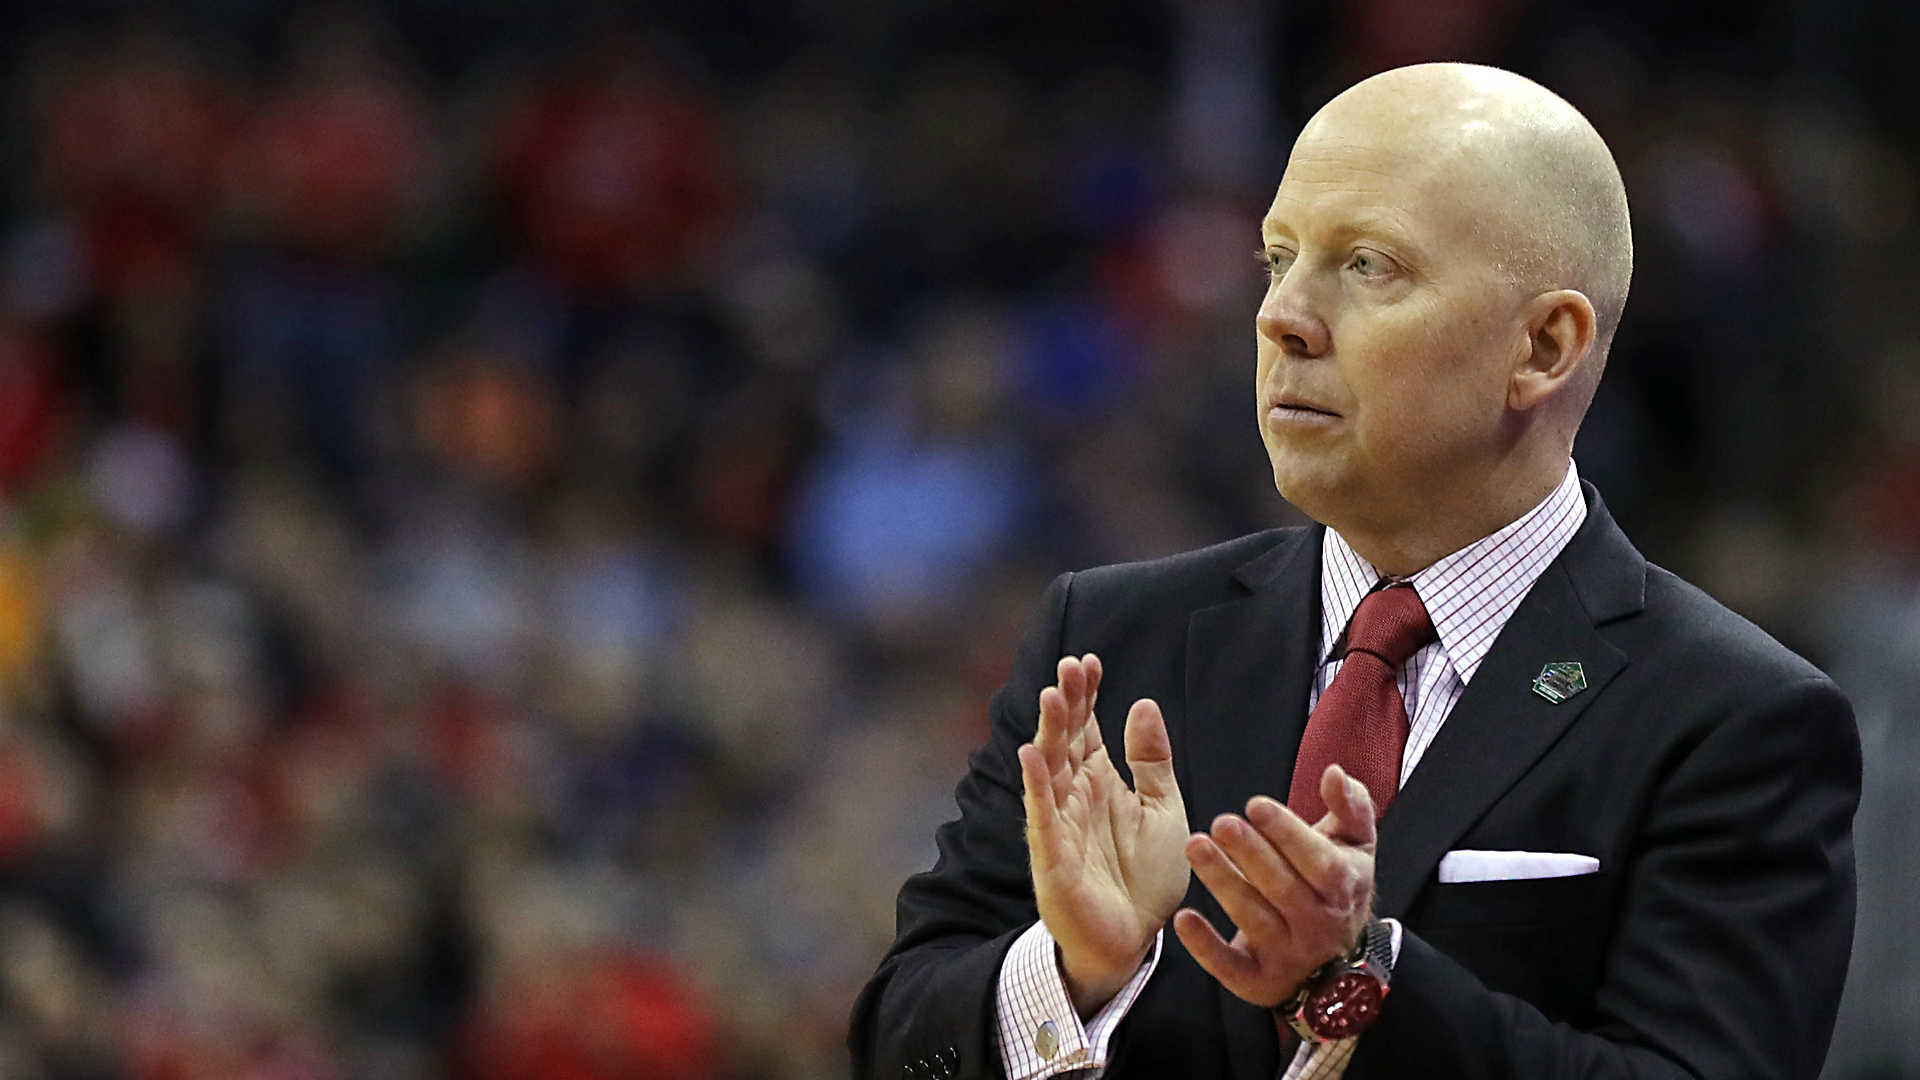 Cincinnati basketball coach Mick Cronin bolting for UCLA job